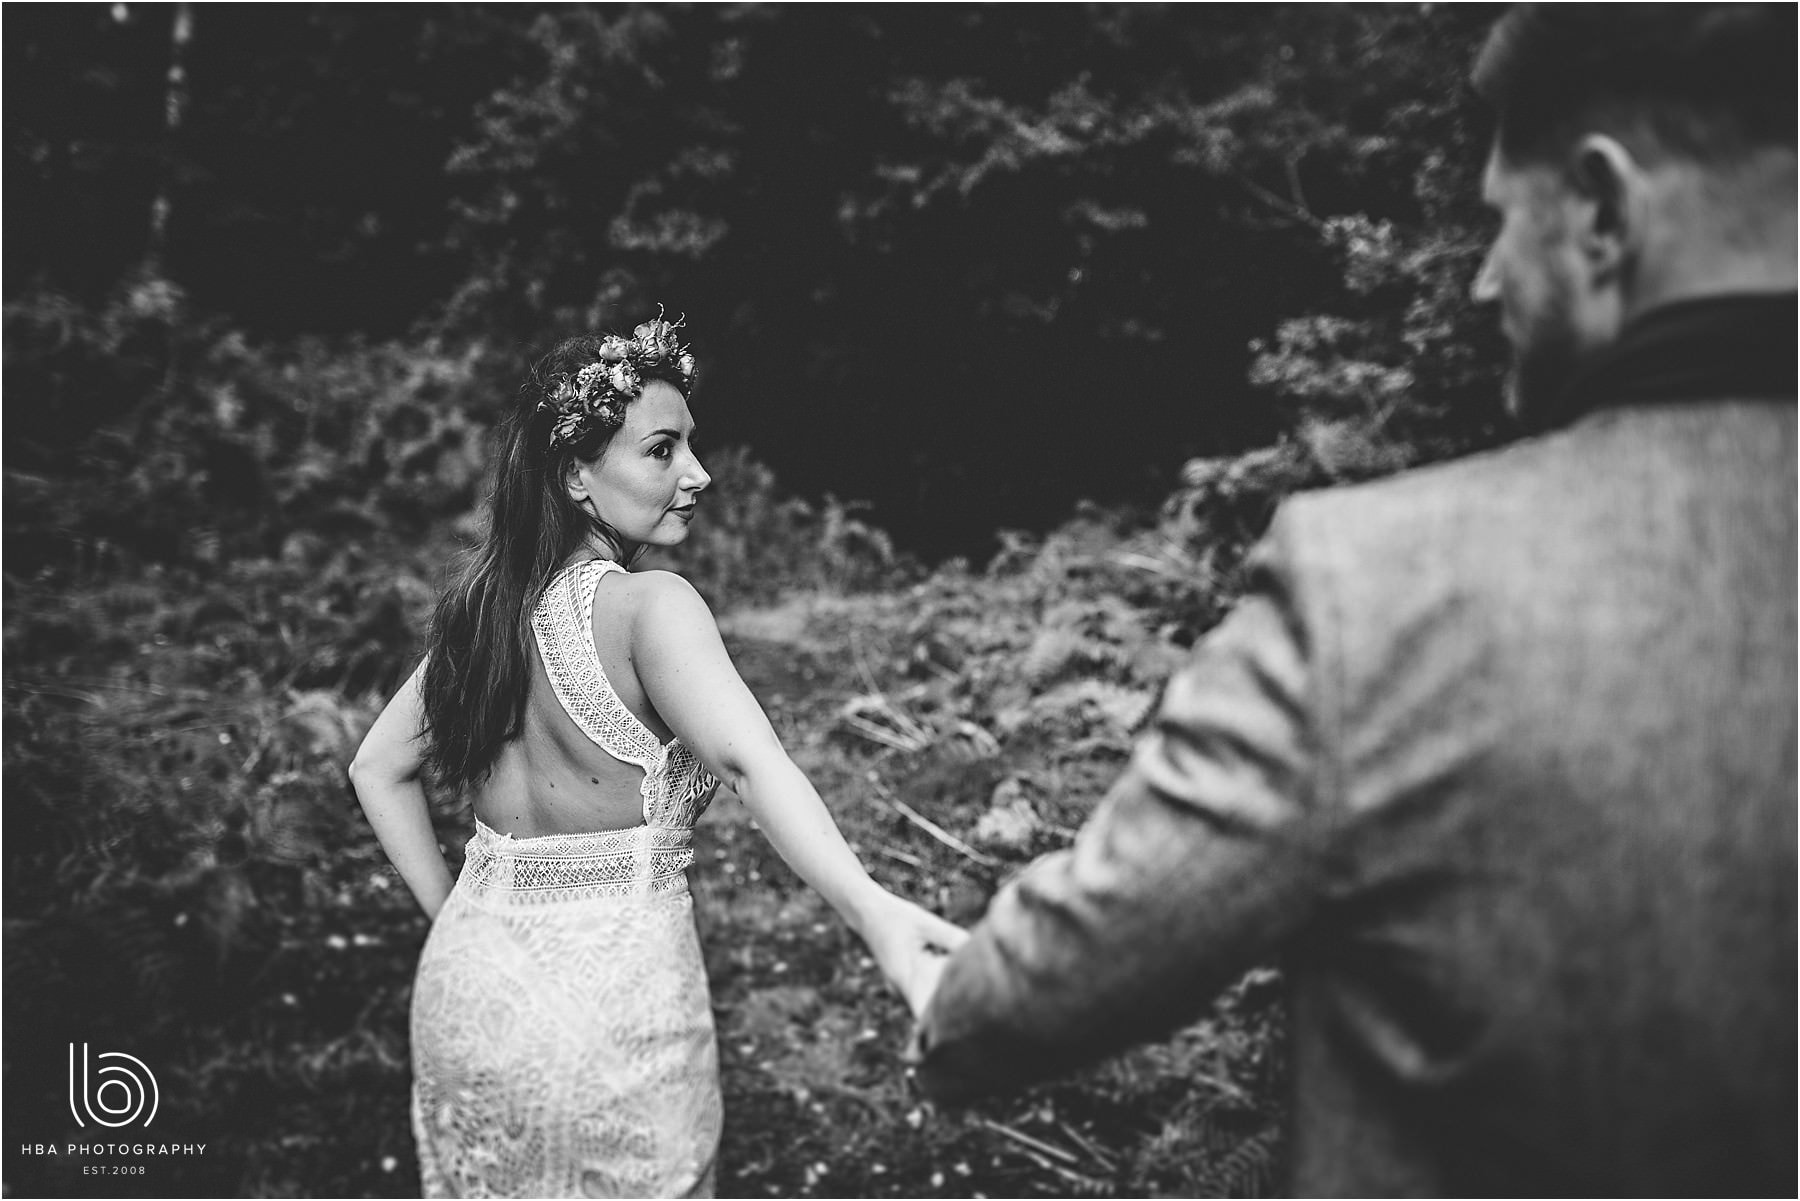 The bride and groom walking into the woods on their wedding day